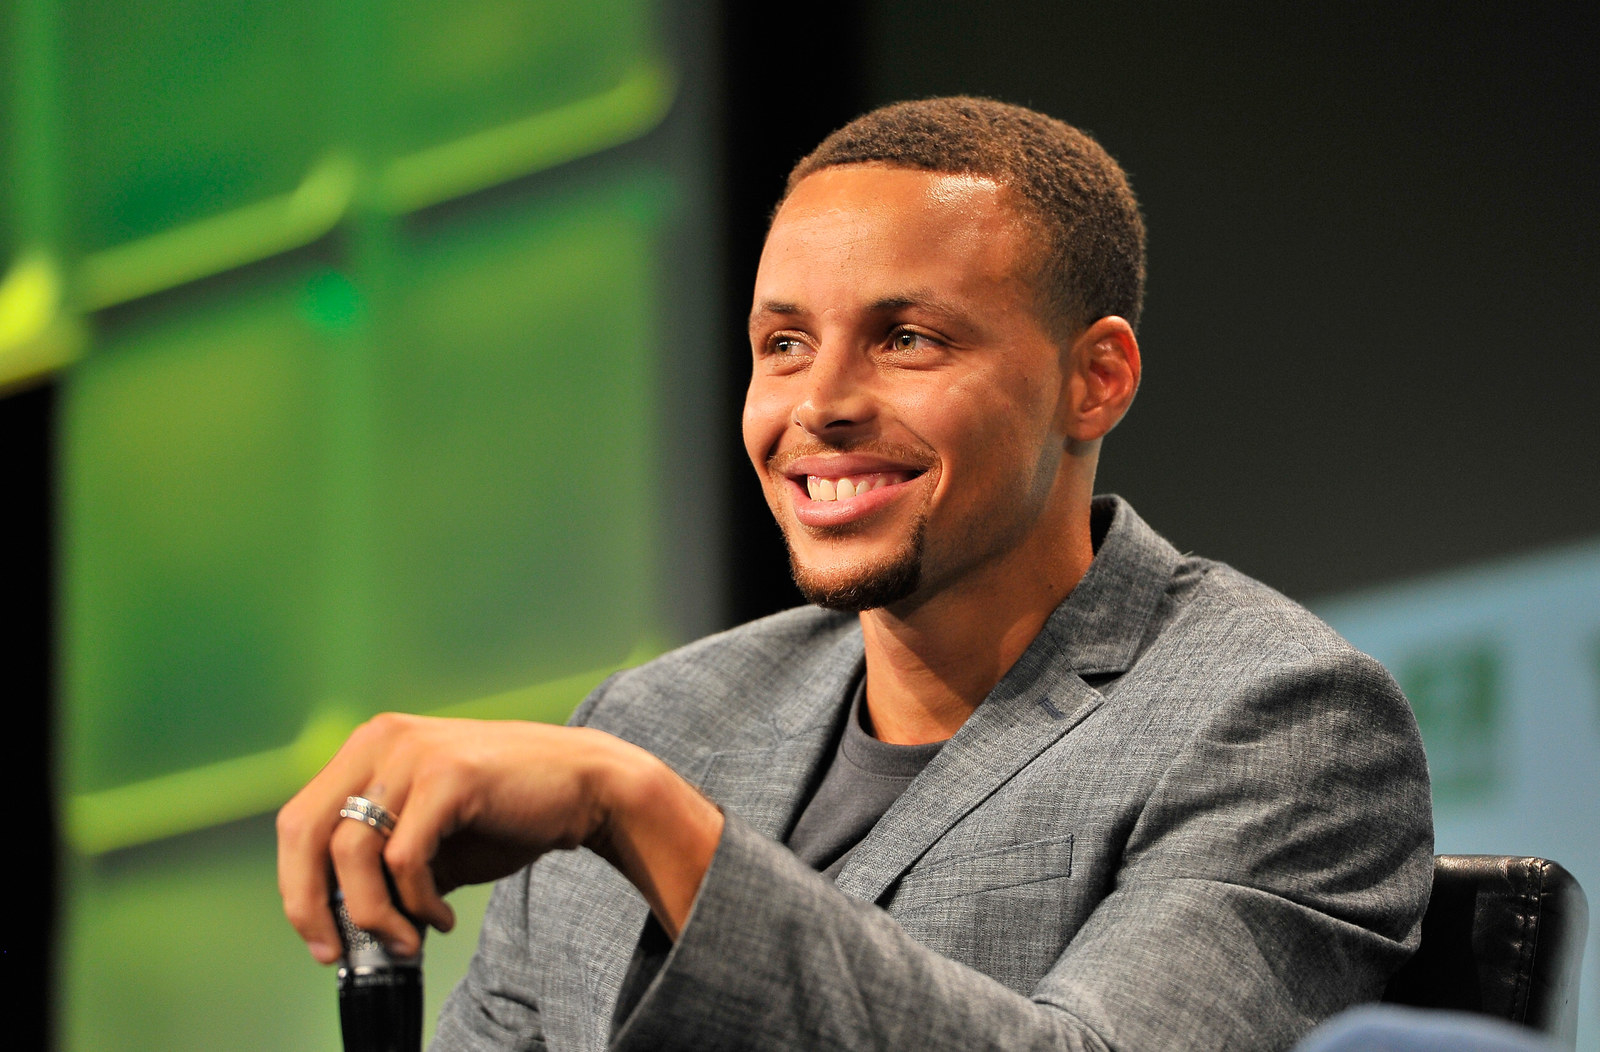 History Of English Essay Nba Star Steph Curry Advocated For Gender Equality And For A Push To  Eliminate The Pay Essay About Science And Technology also Essay In English Literature Steph Curry Wrote A Powerful Essay About Womens Equality The  Research Paper Essay Examples